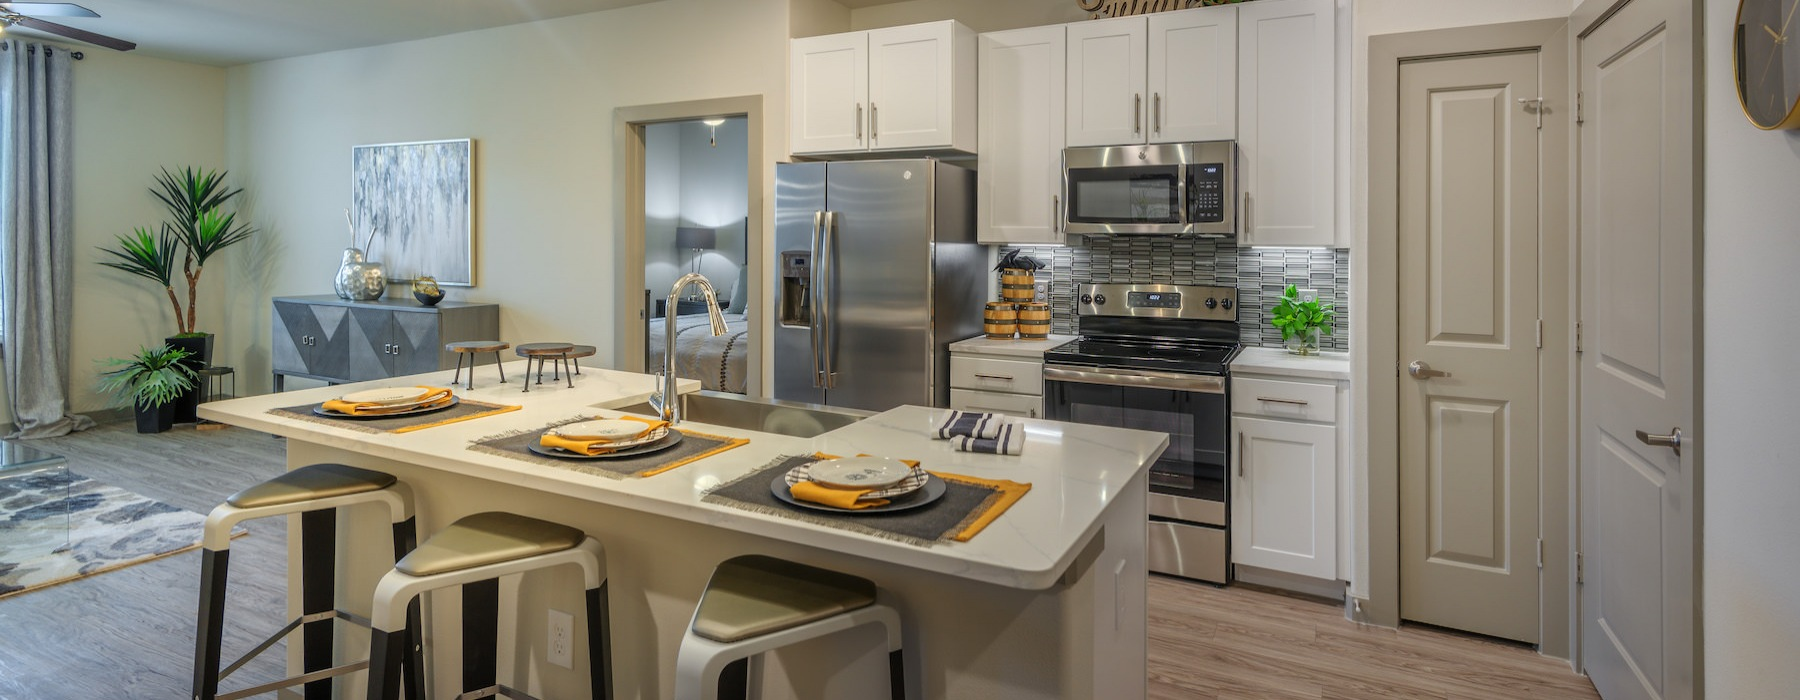 Model unit at Radius West showinng the ktichen and its island with an open door to the bedroom